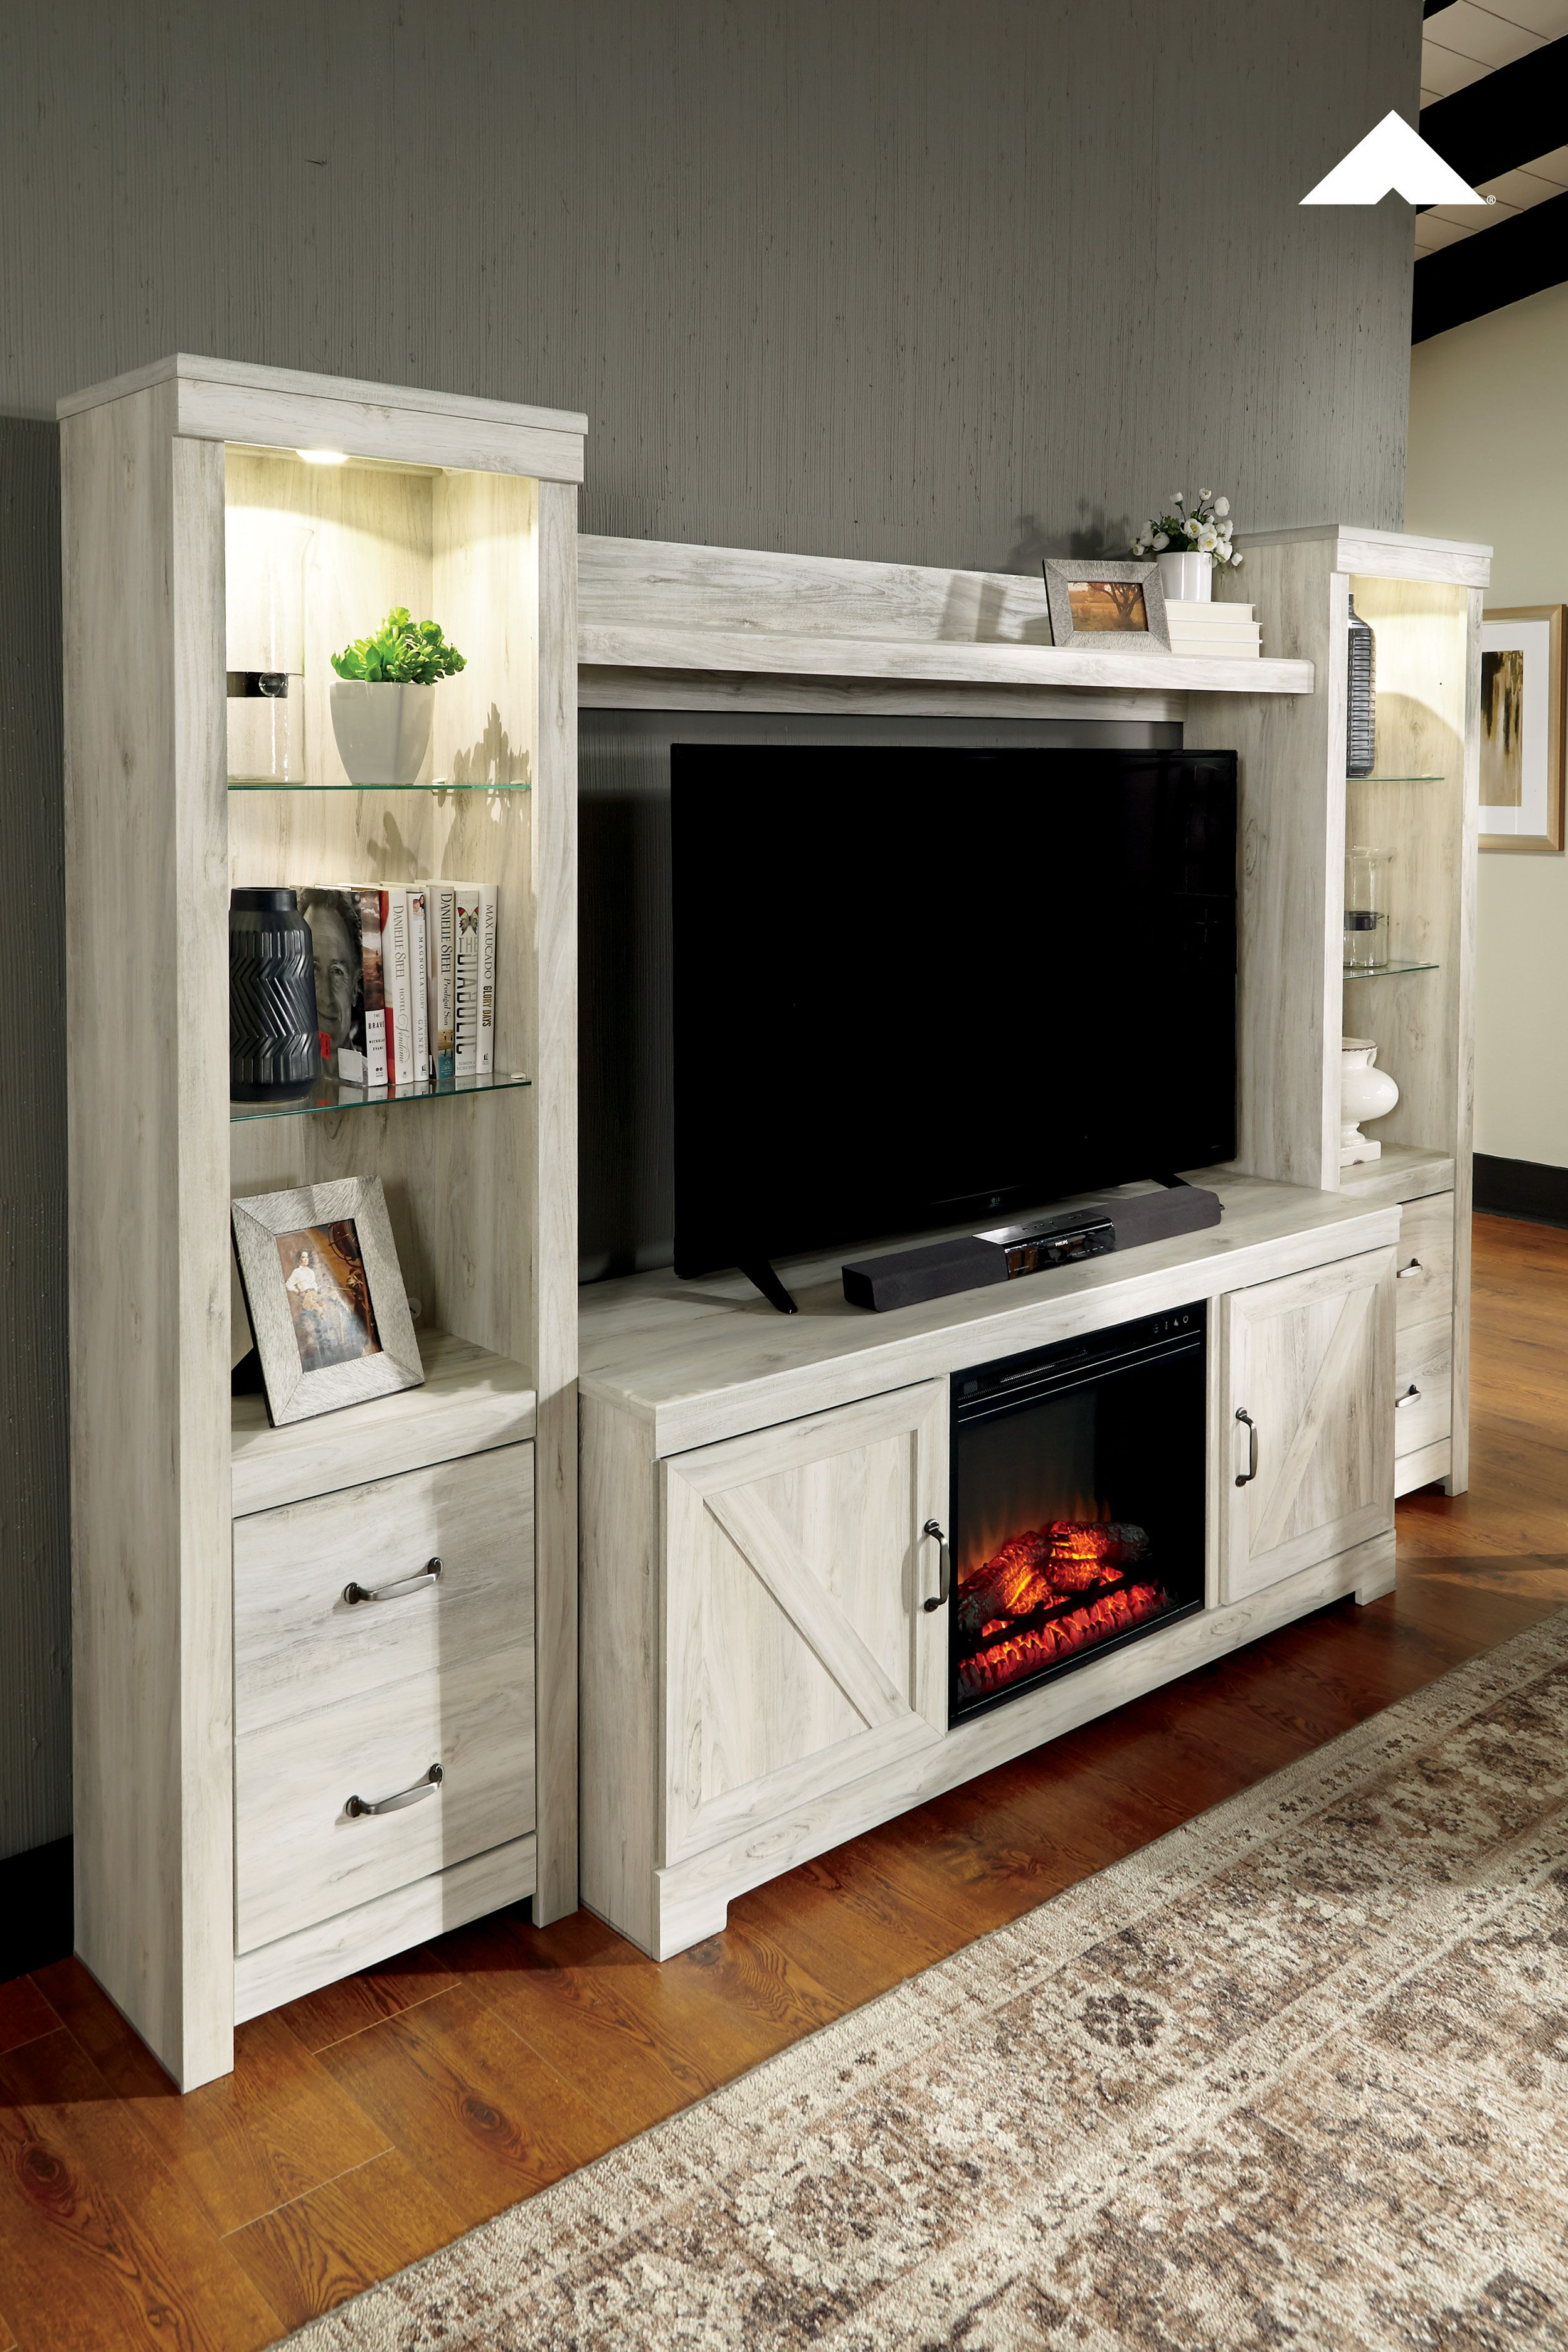 Fireplace Media Console Large 75 Inch Tv Stand Shelves Cabinets